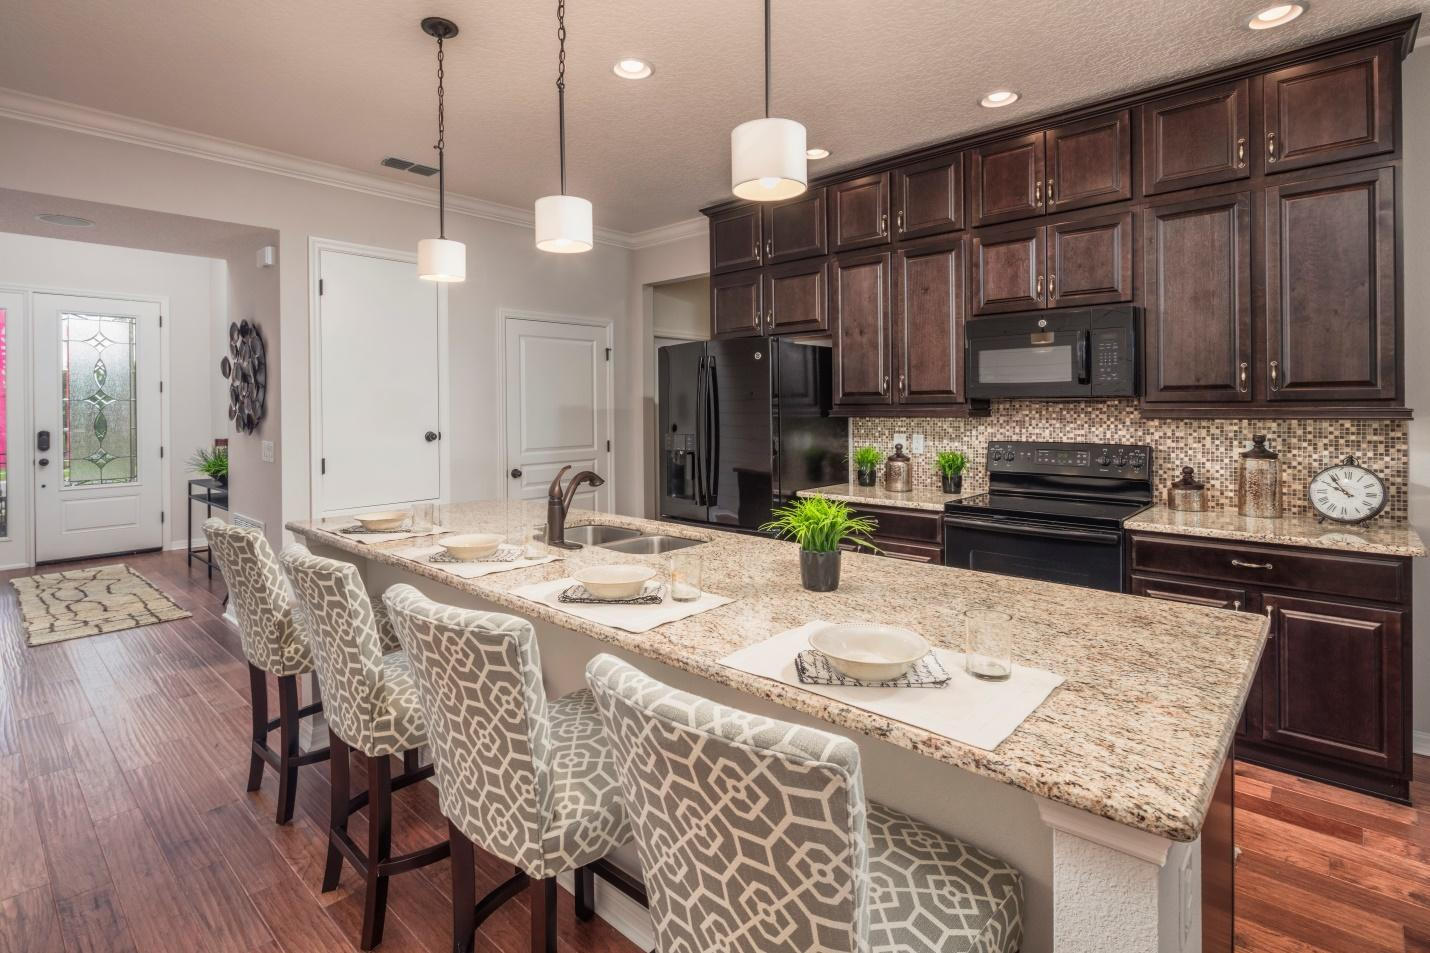 Kitchen featured in the Messina By Century and Craft Homes in Orlando, FL